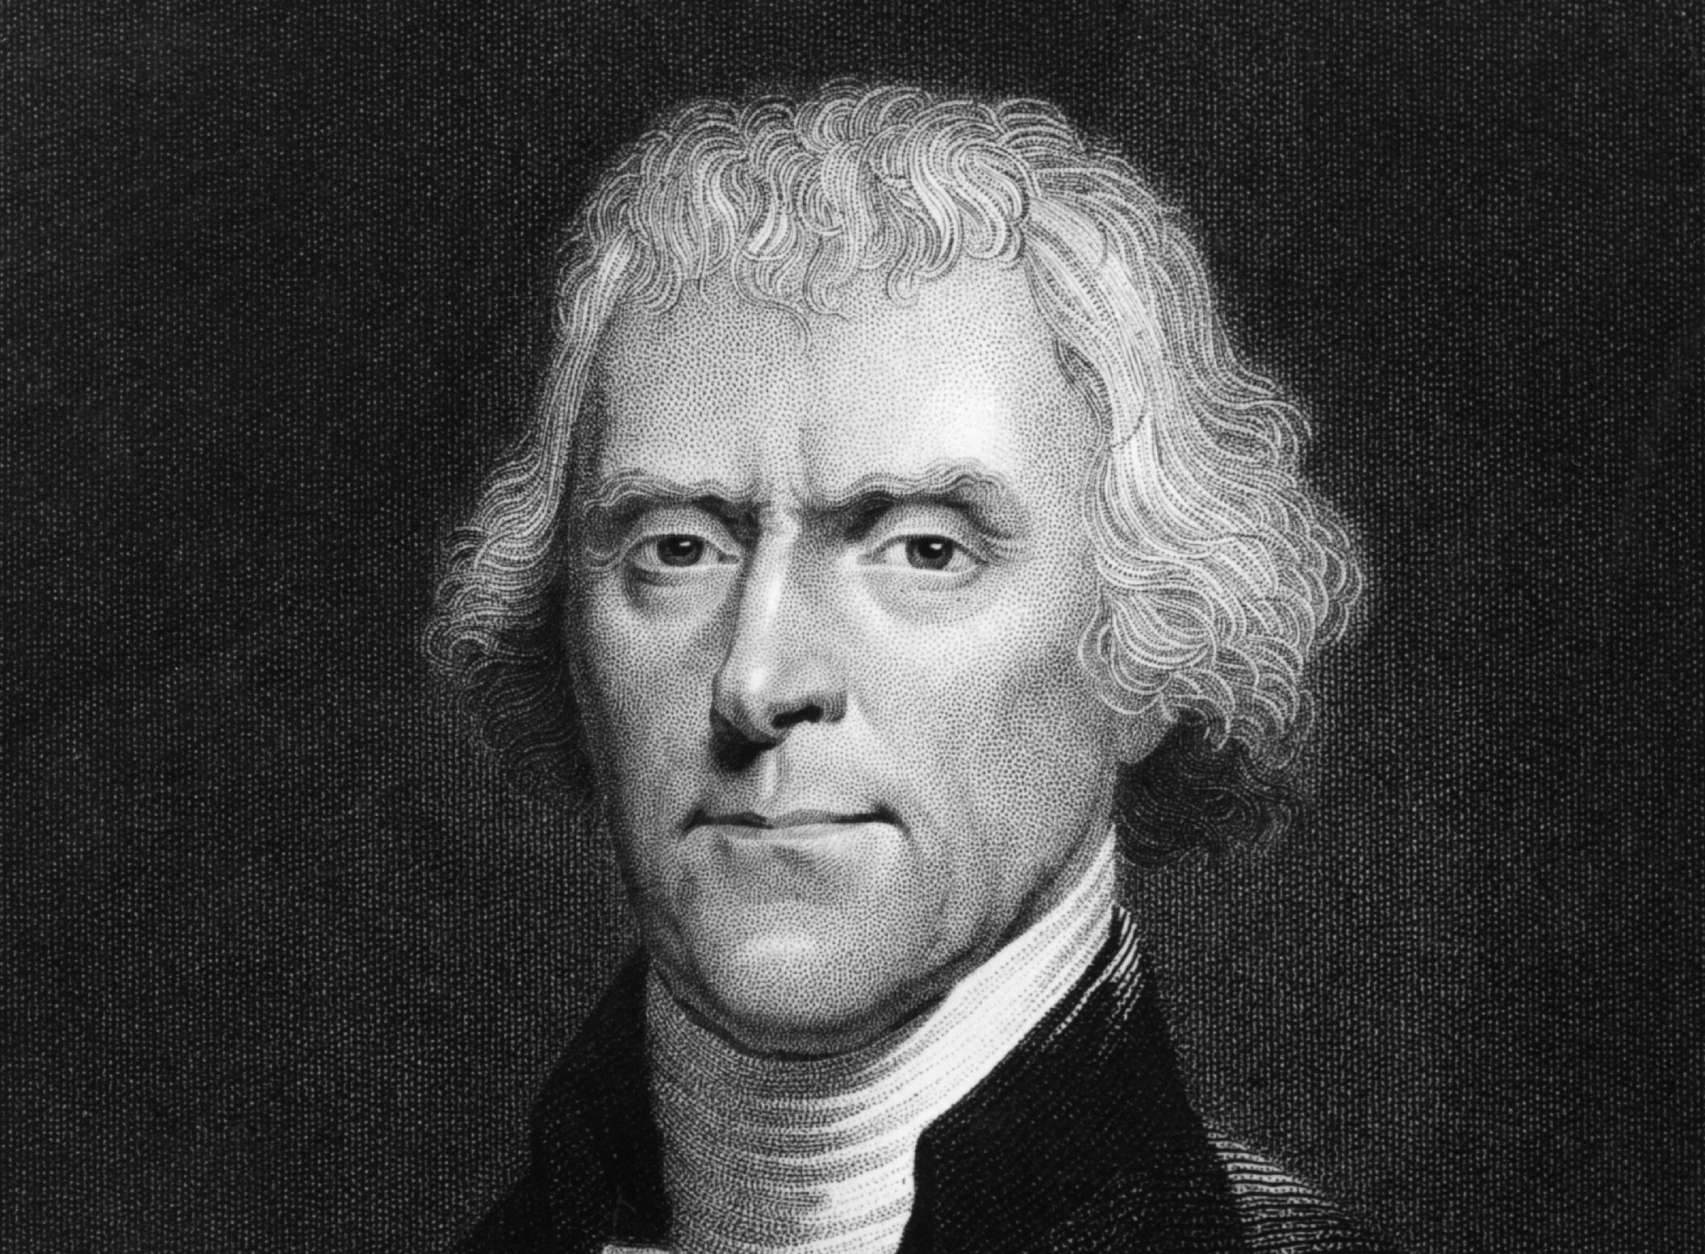 American statesman Thomas Jefferson (1743 - 1826), the 3rd President of the United States of America. Jefferson was also responsible of the writing of the Declaration of Independence. Original Artwork: Engraving after painting by Rembrandt Peale.   (Photo by Hulton Archive/Getty Images)